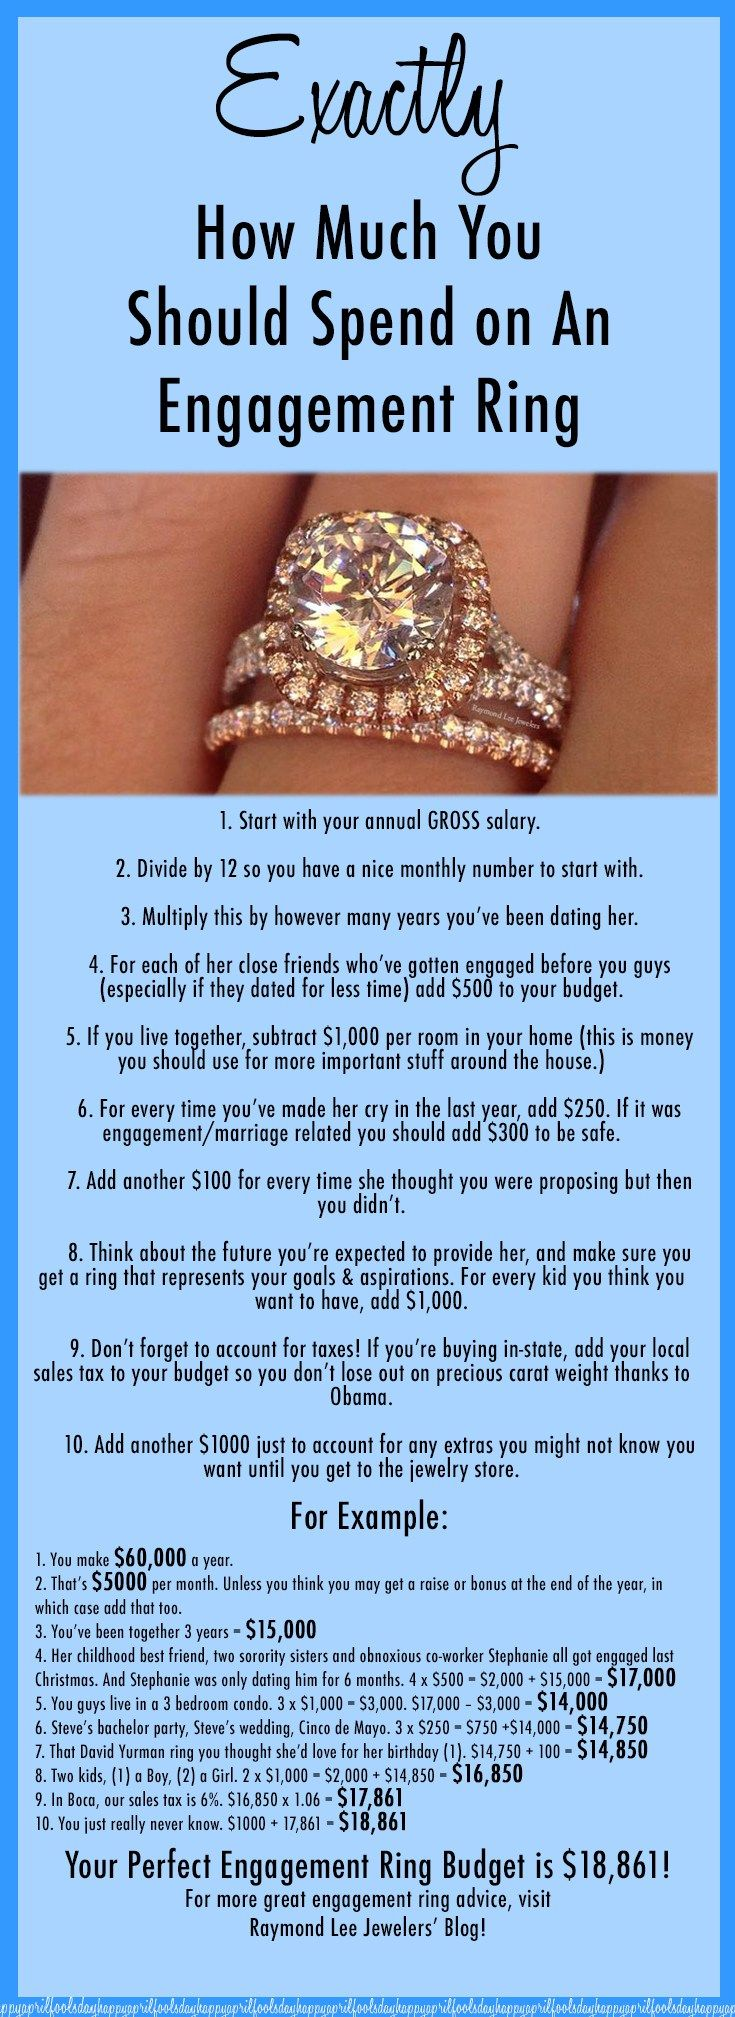 How Much Should You Spend On An Engagement Ring Not This